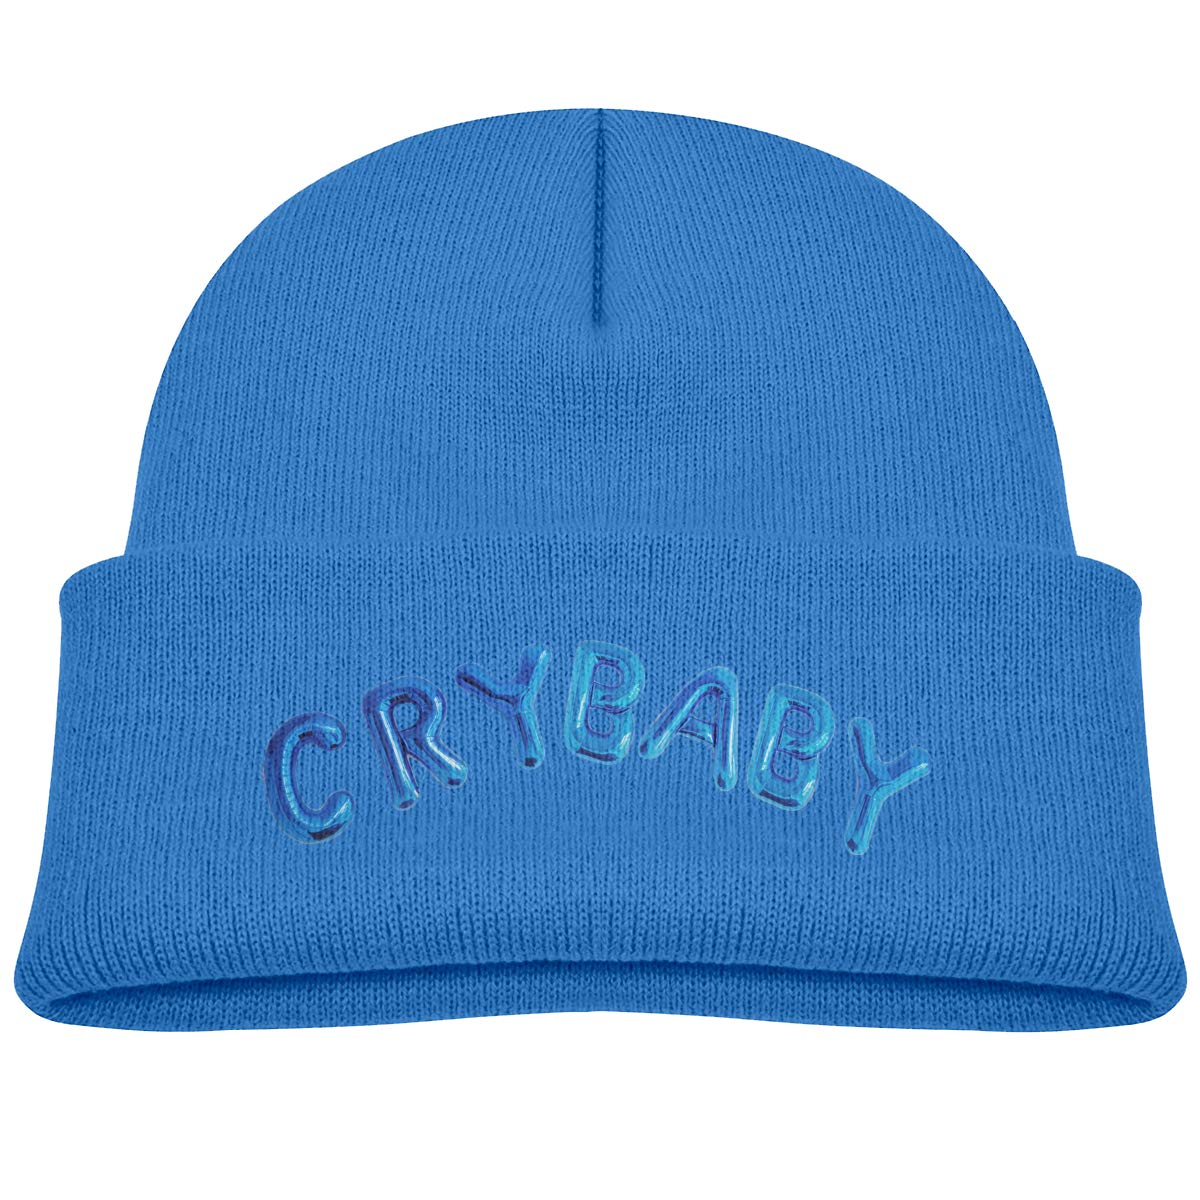 JunYueZ Melanie Martinez Cry Baby Kids Boys Girls Beanies Hat Warm Caps Cotton Beanie Kids Cool Knit Cap Black